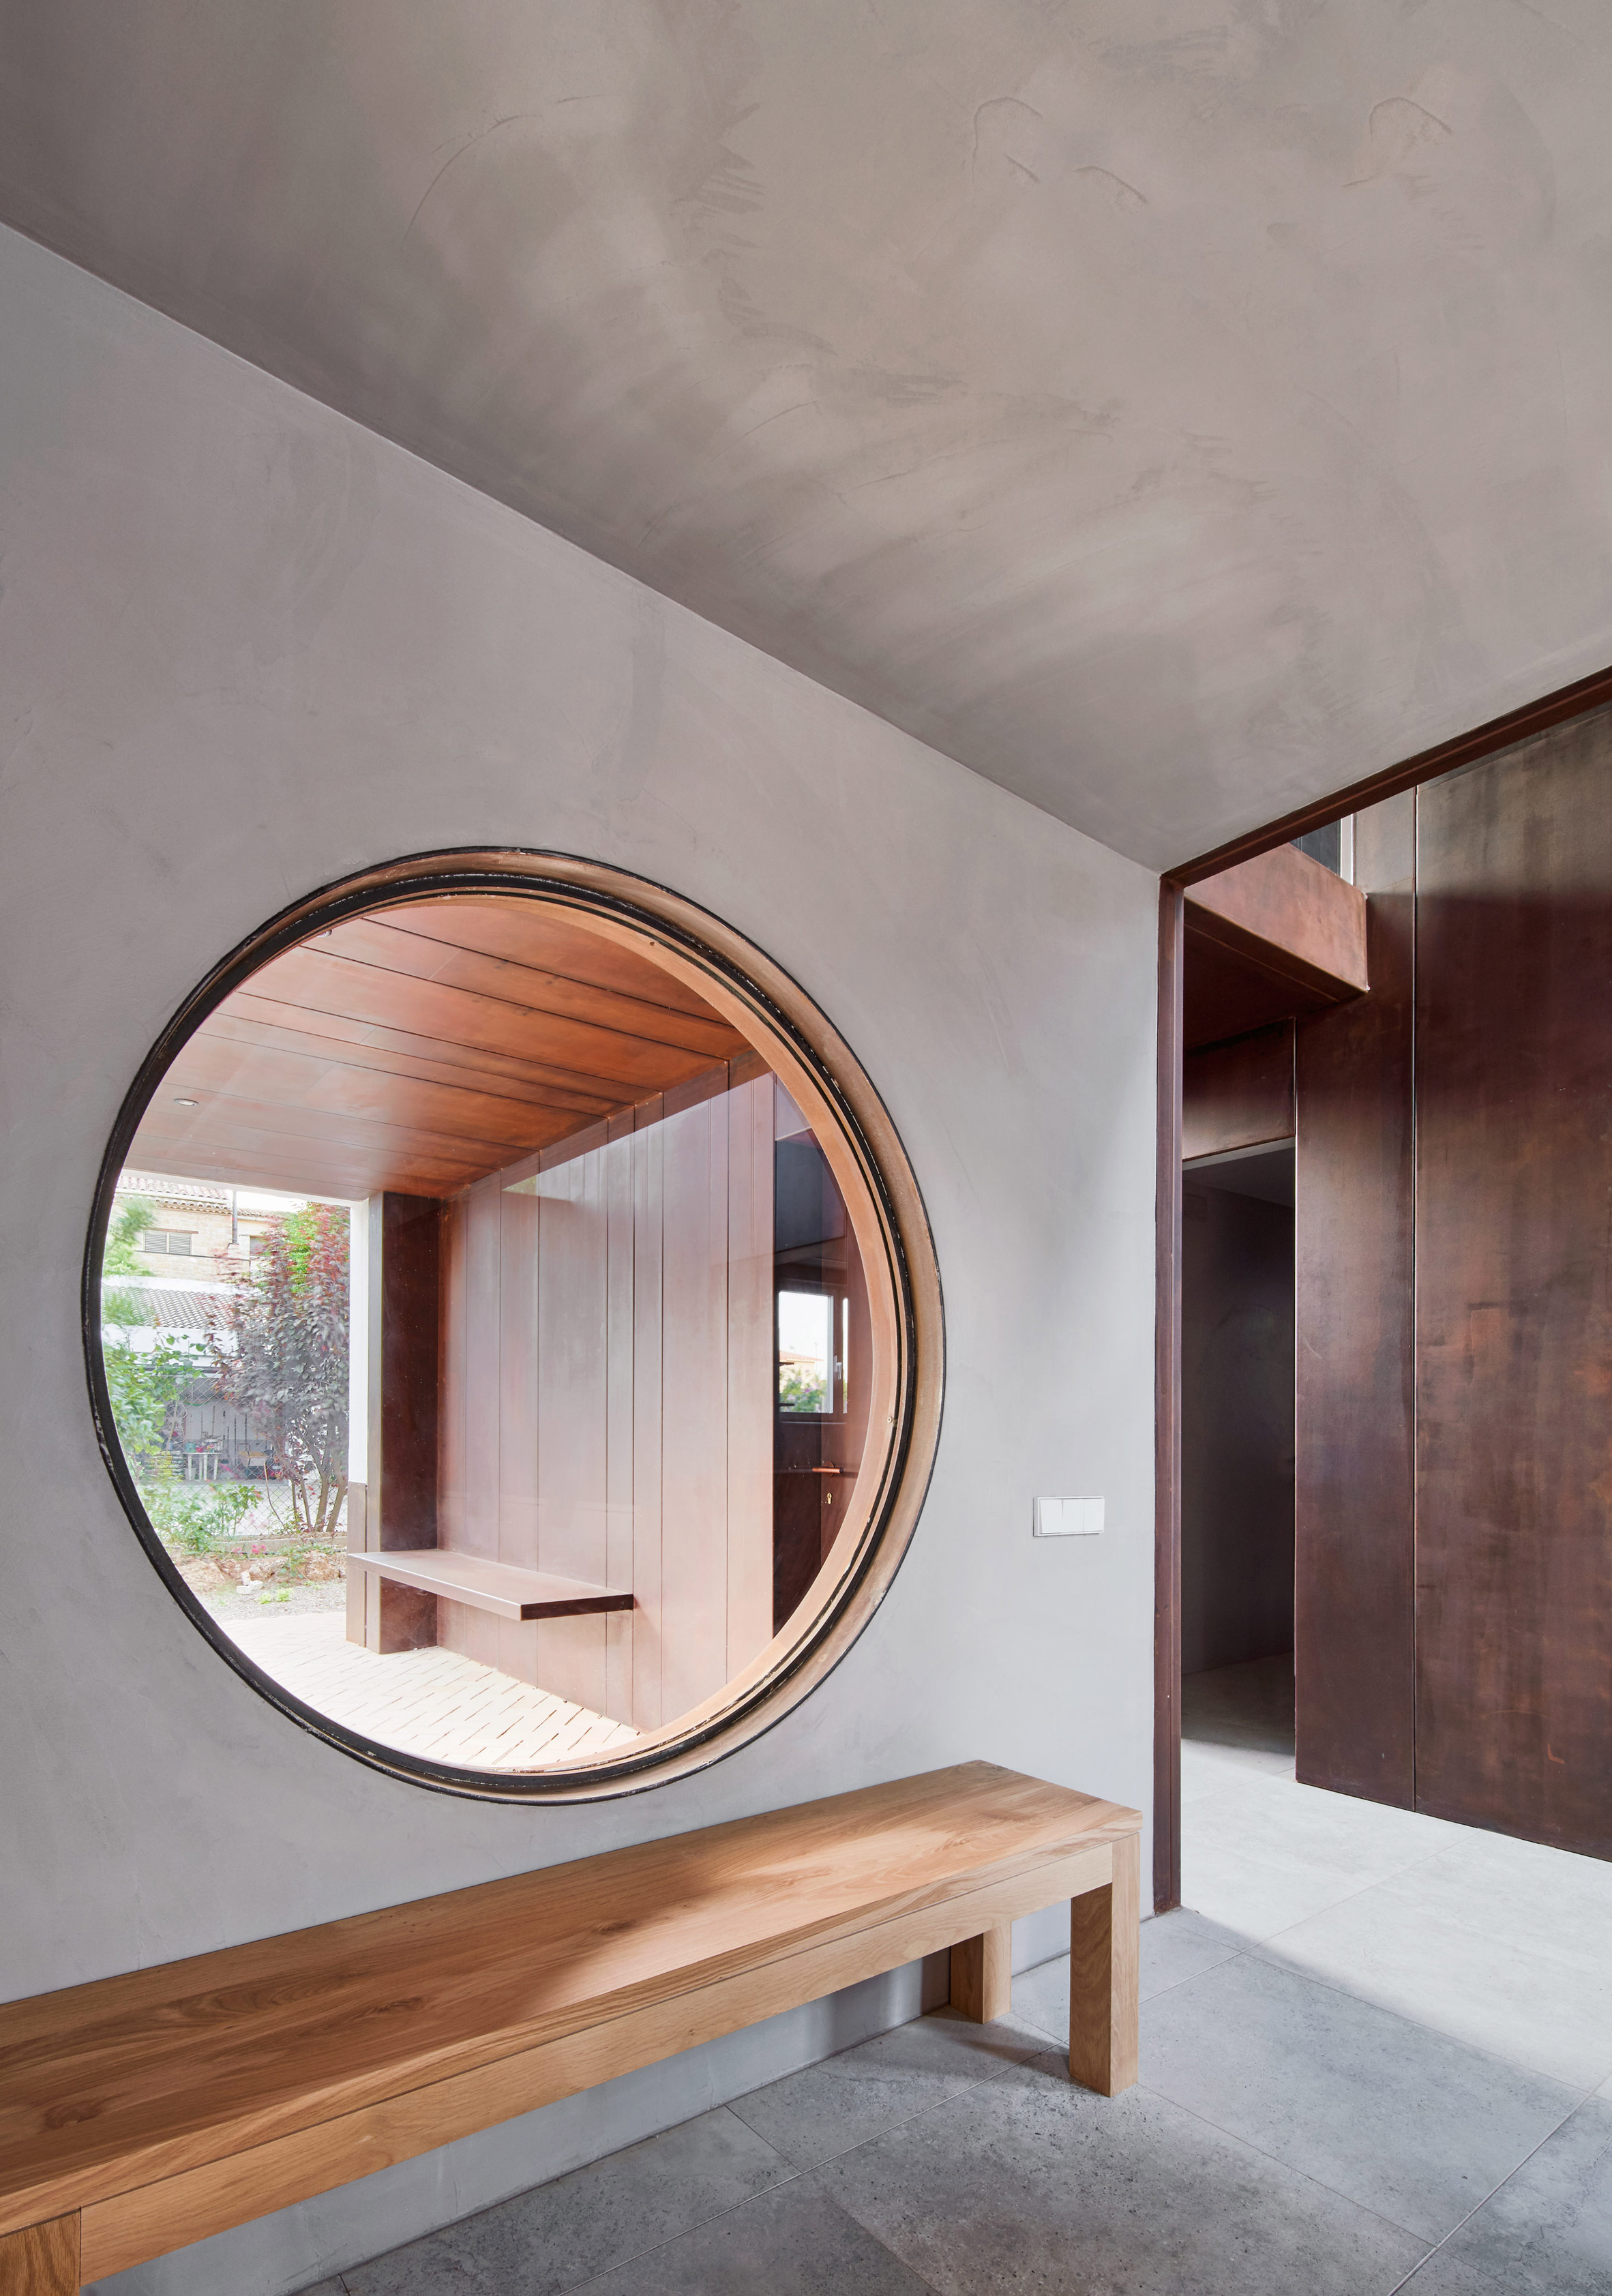 Gallery House by Raúl Sánchez Architects circular window